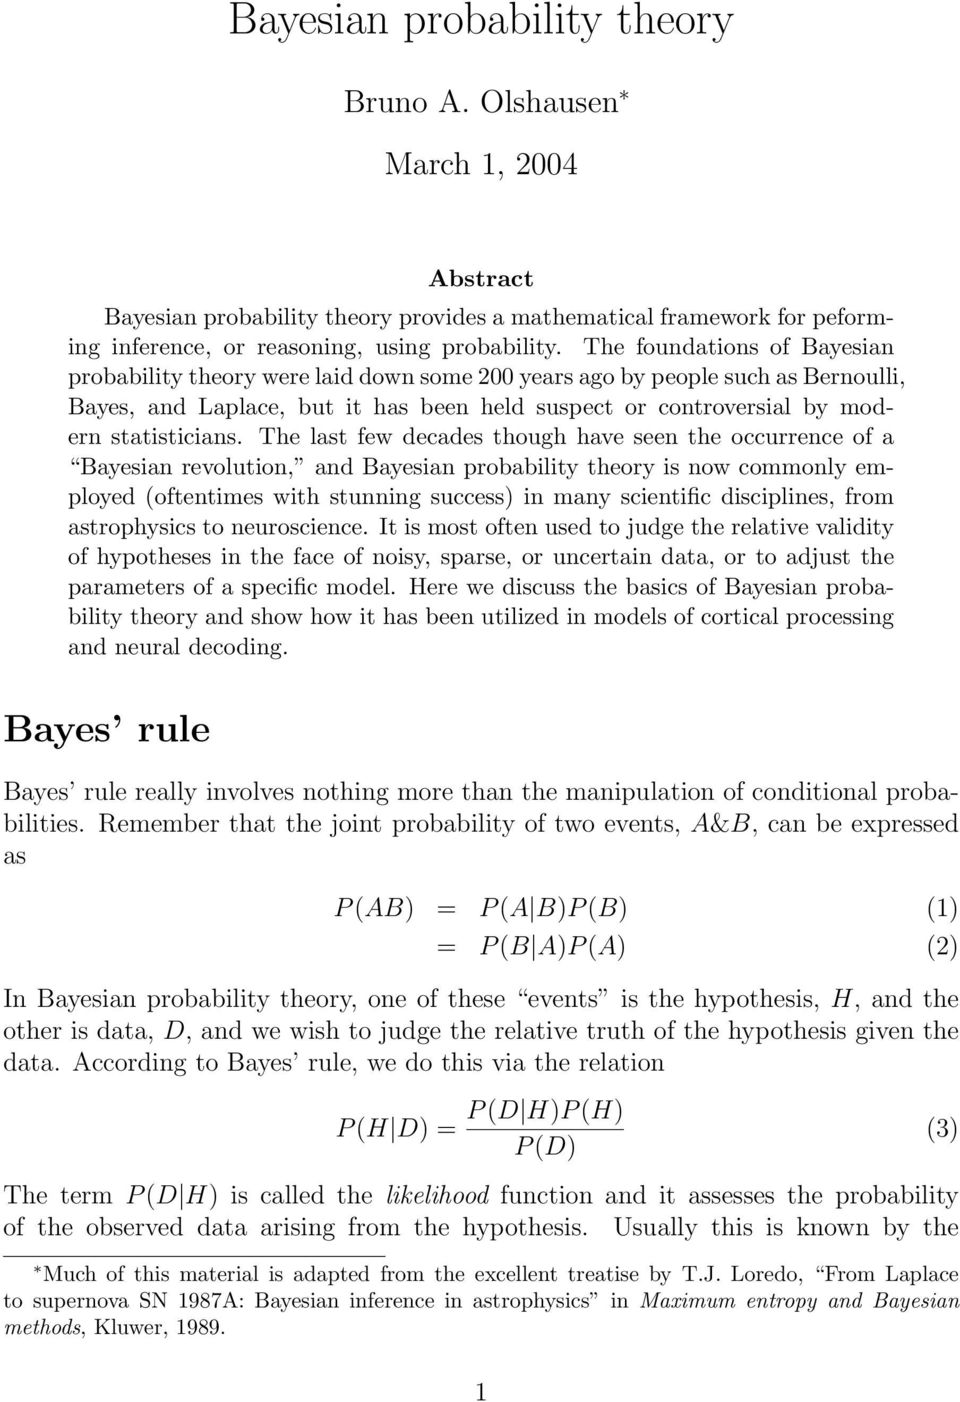 The last few decades though have seen the occurrence of a Bayesian revolution, and Bayesian probability theory is now commonly employed (oftentimes with stunning success) in many scientific